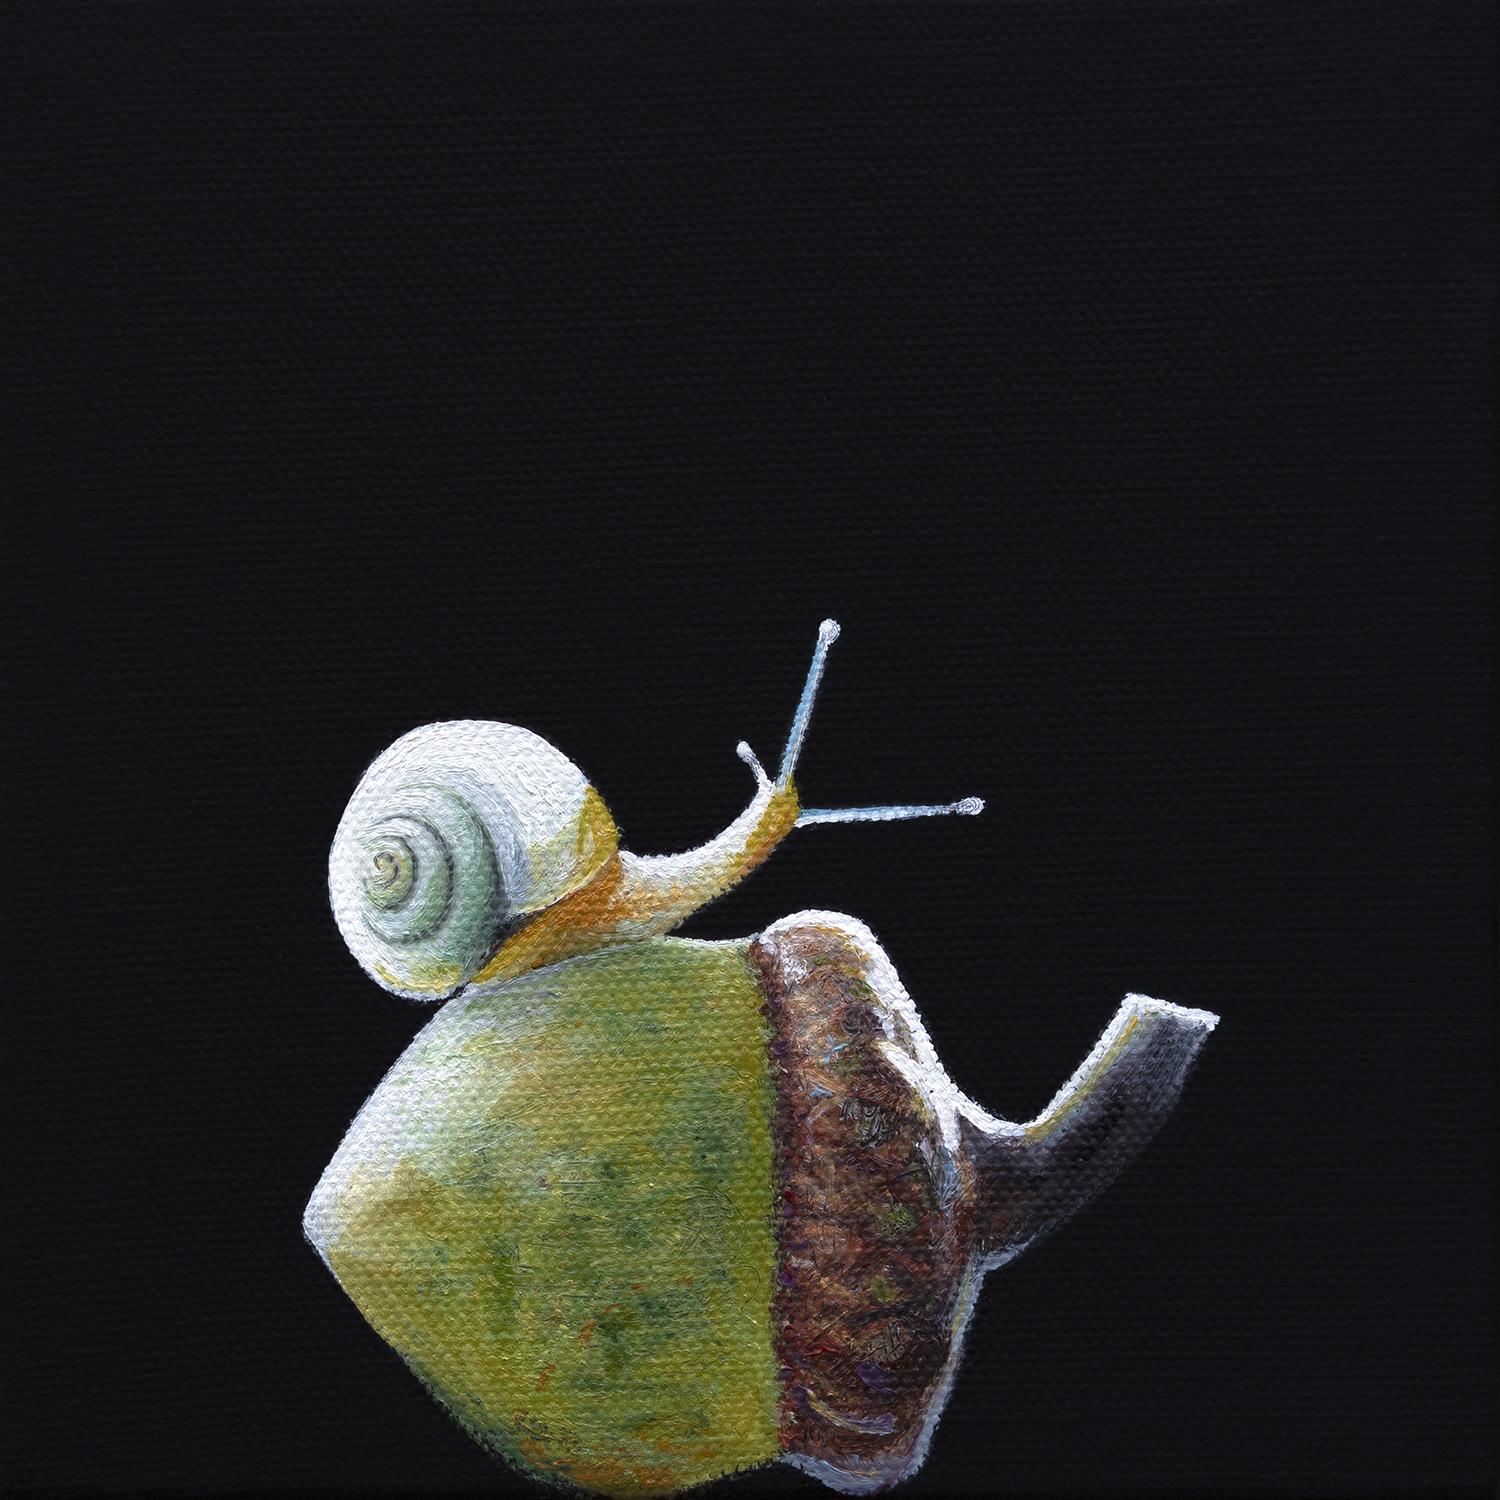 Gastropod | 7 x 7 | Oil on canvas